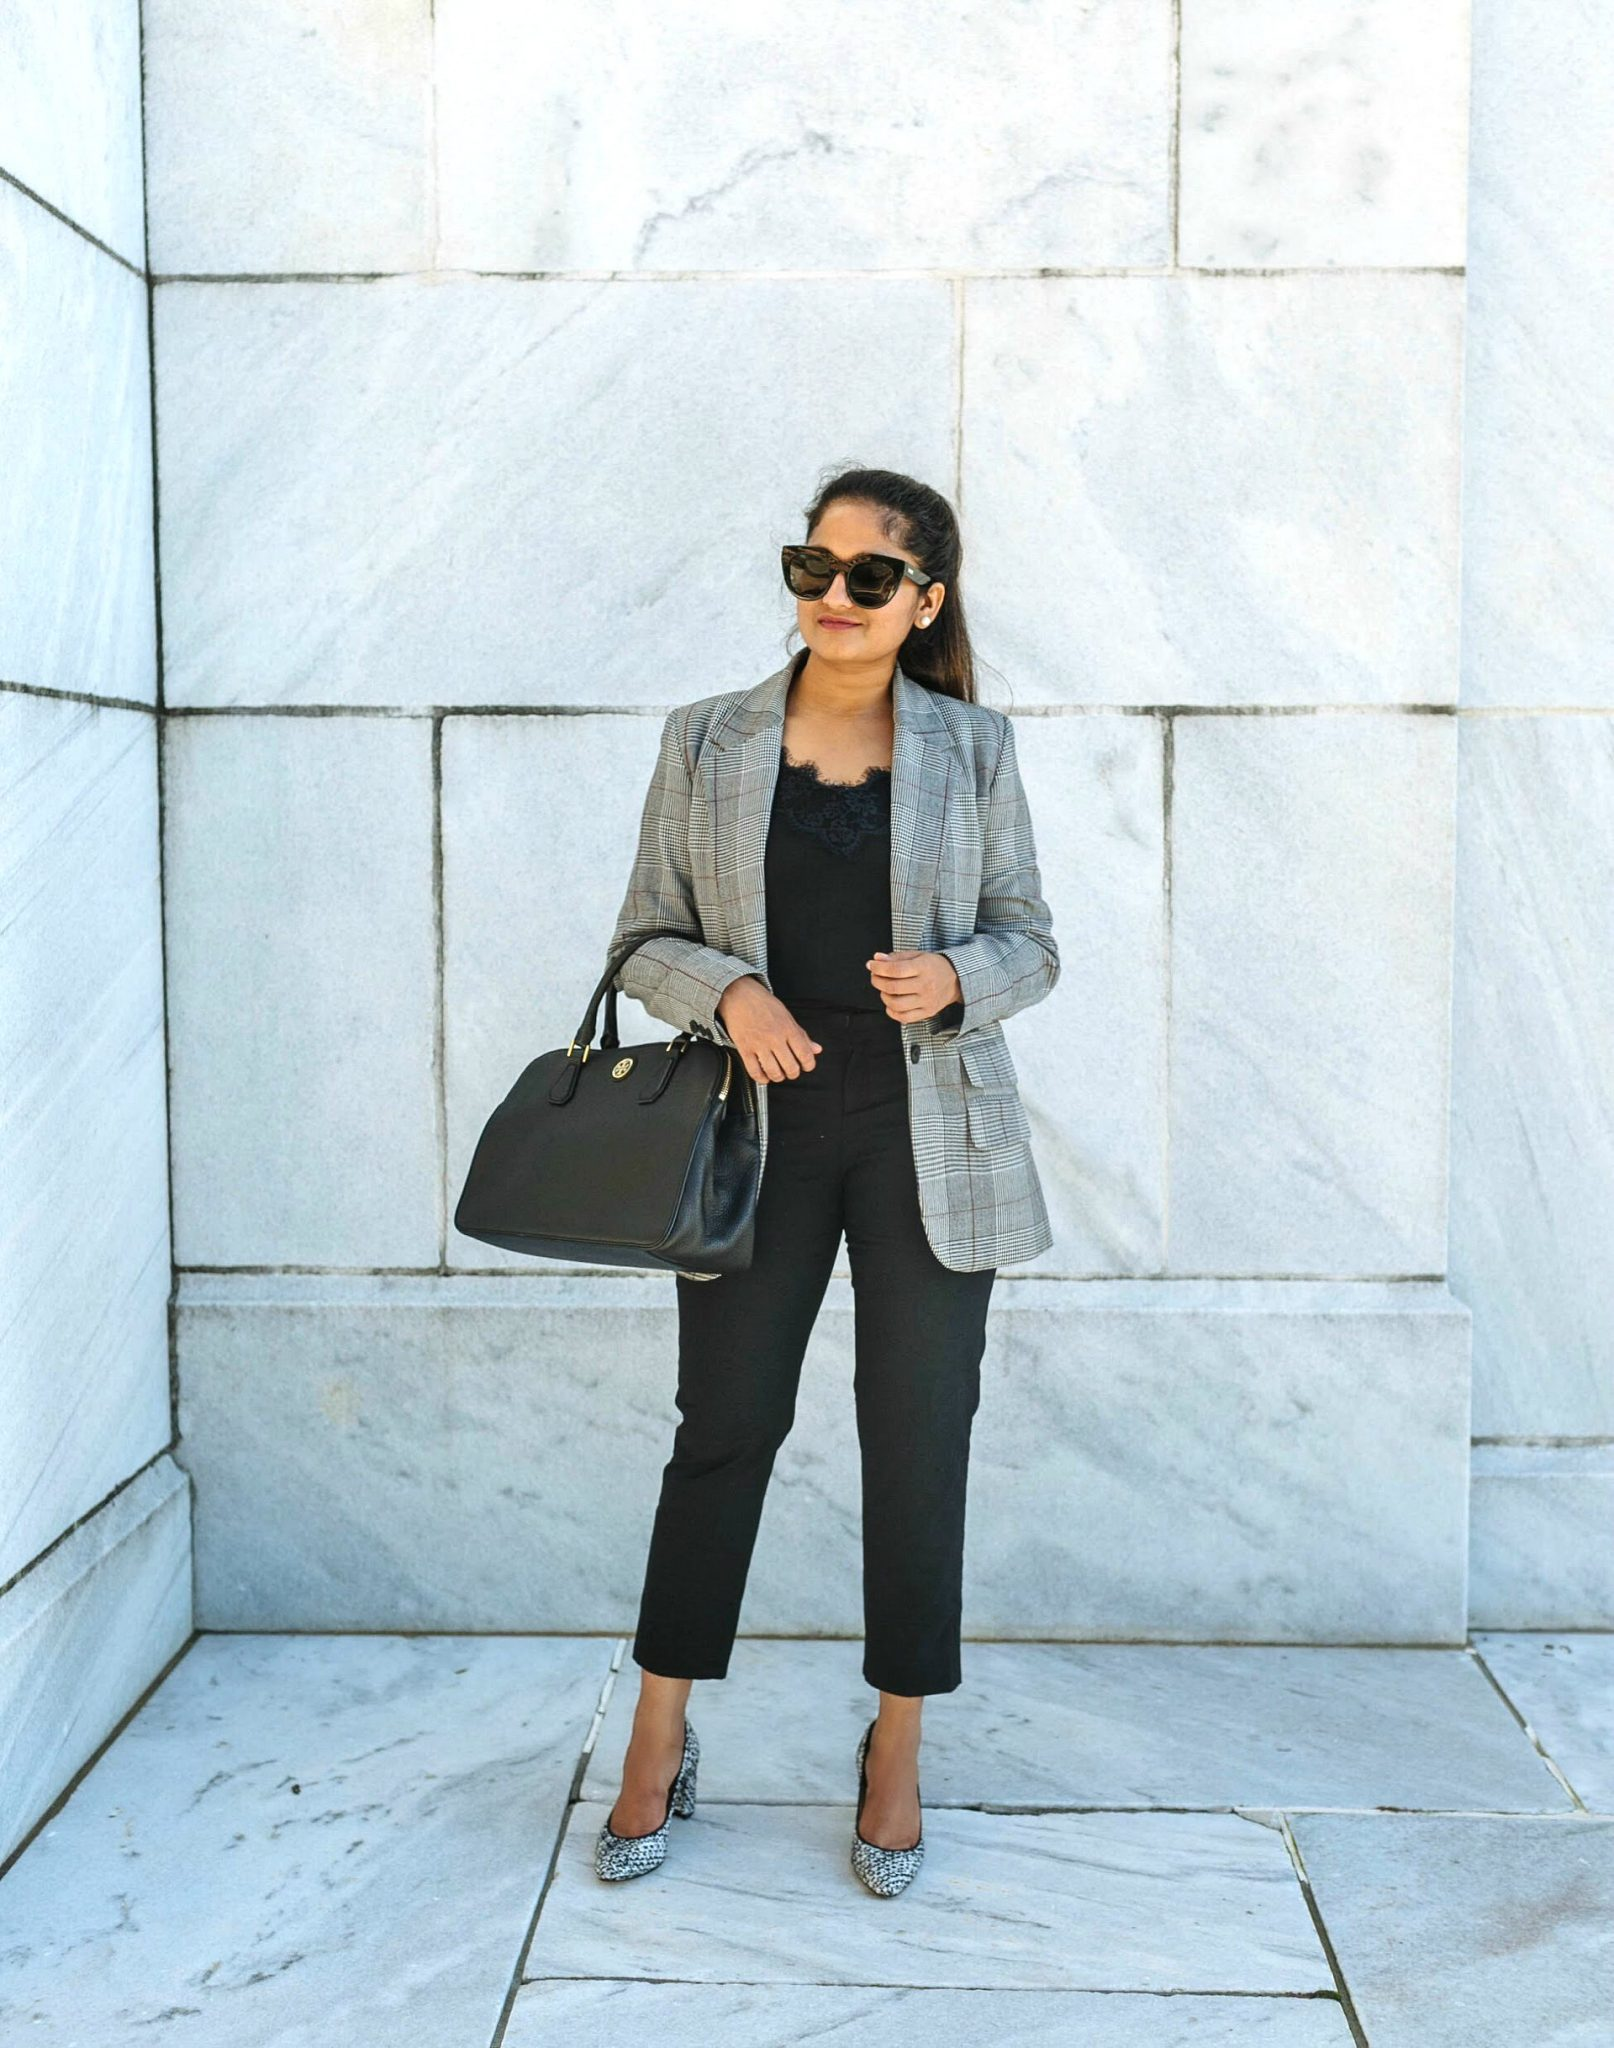 How to wear monochrome outfits to work | Colorful Fall Work Outfits featured by popular Ohio modest fashion blogger, Dreaming Loud